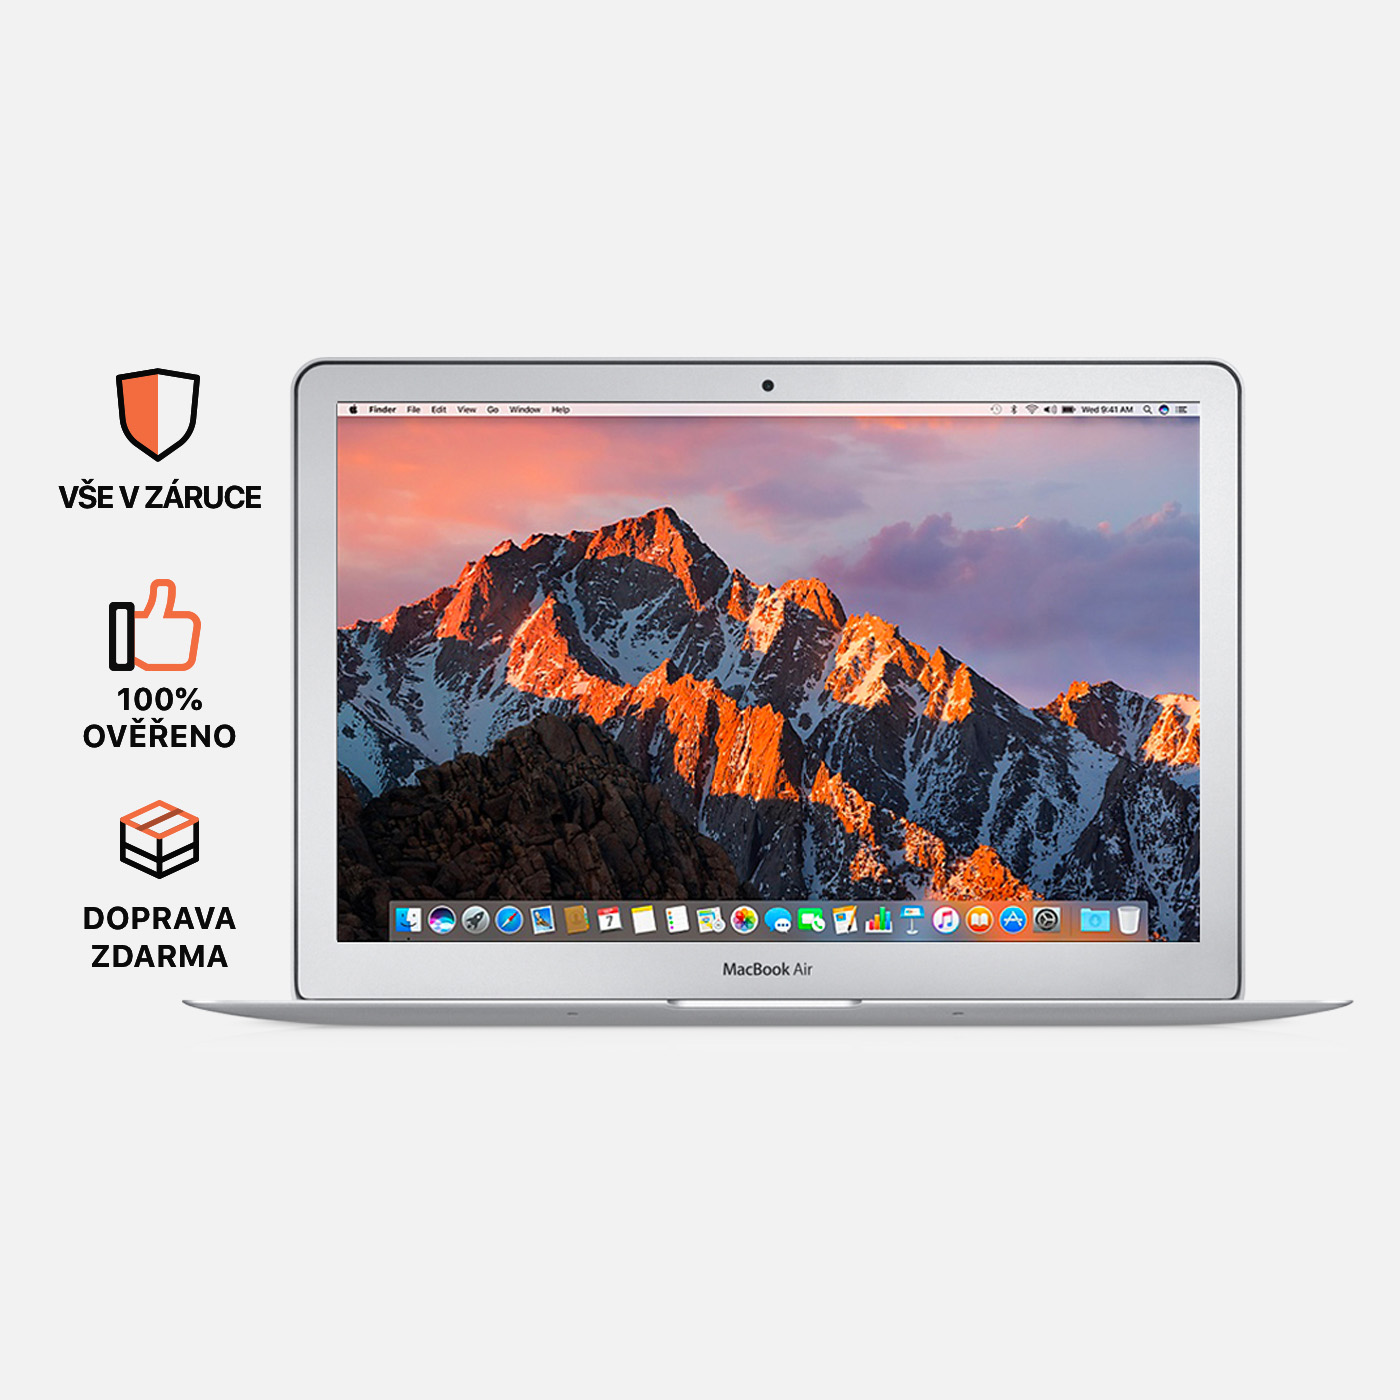 Macbook Air 13'', i5, rok 2013, 8GB RAM, 256GB SSD